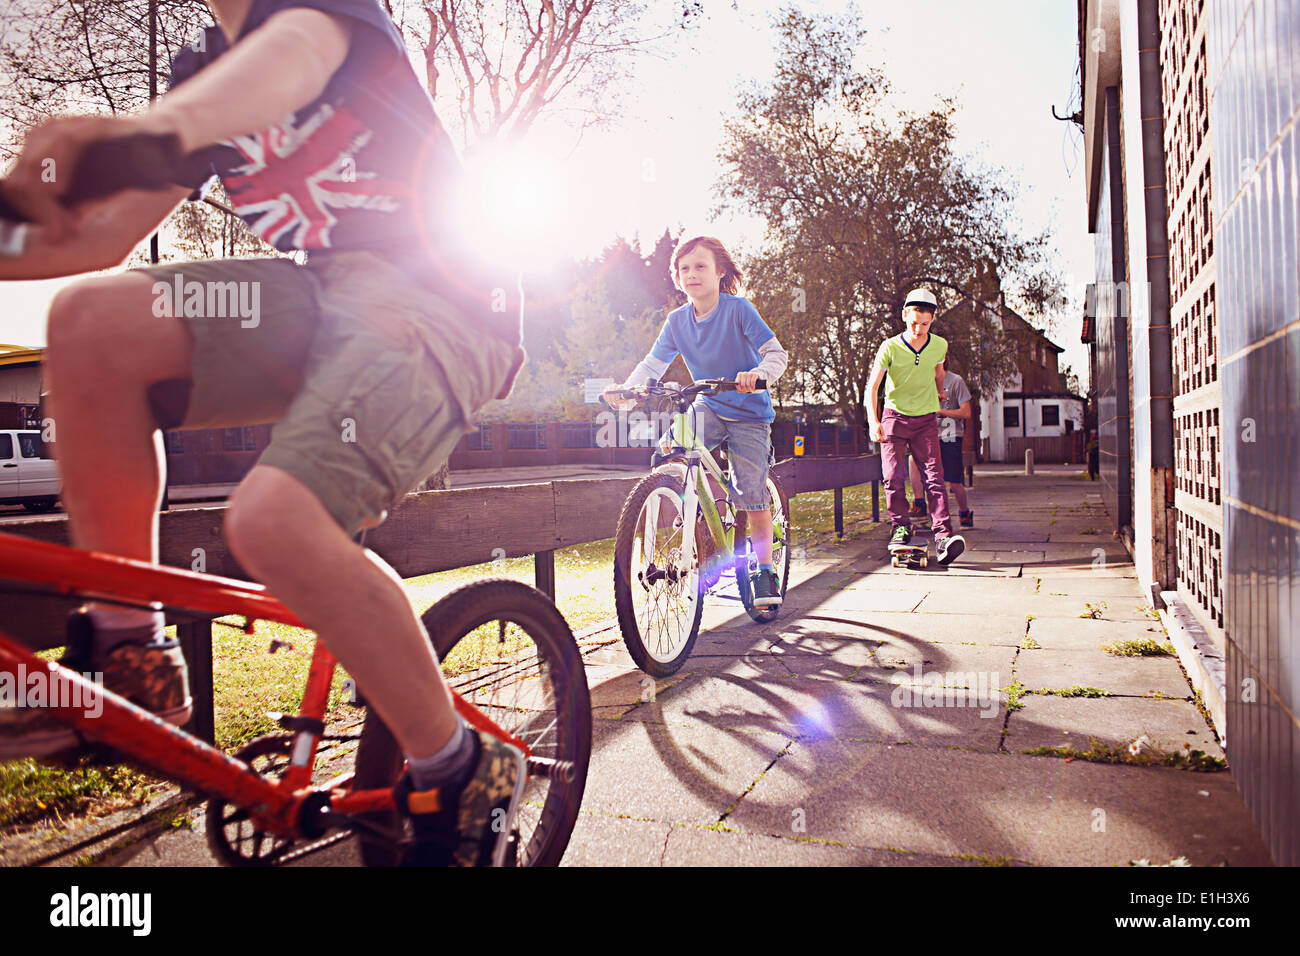 Boys riding bikes - Stock Image